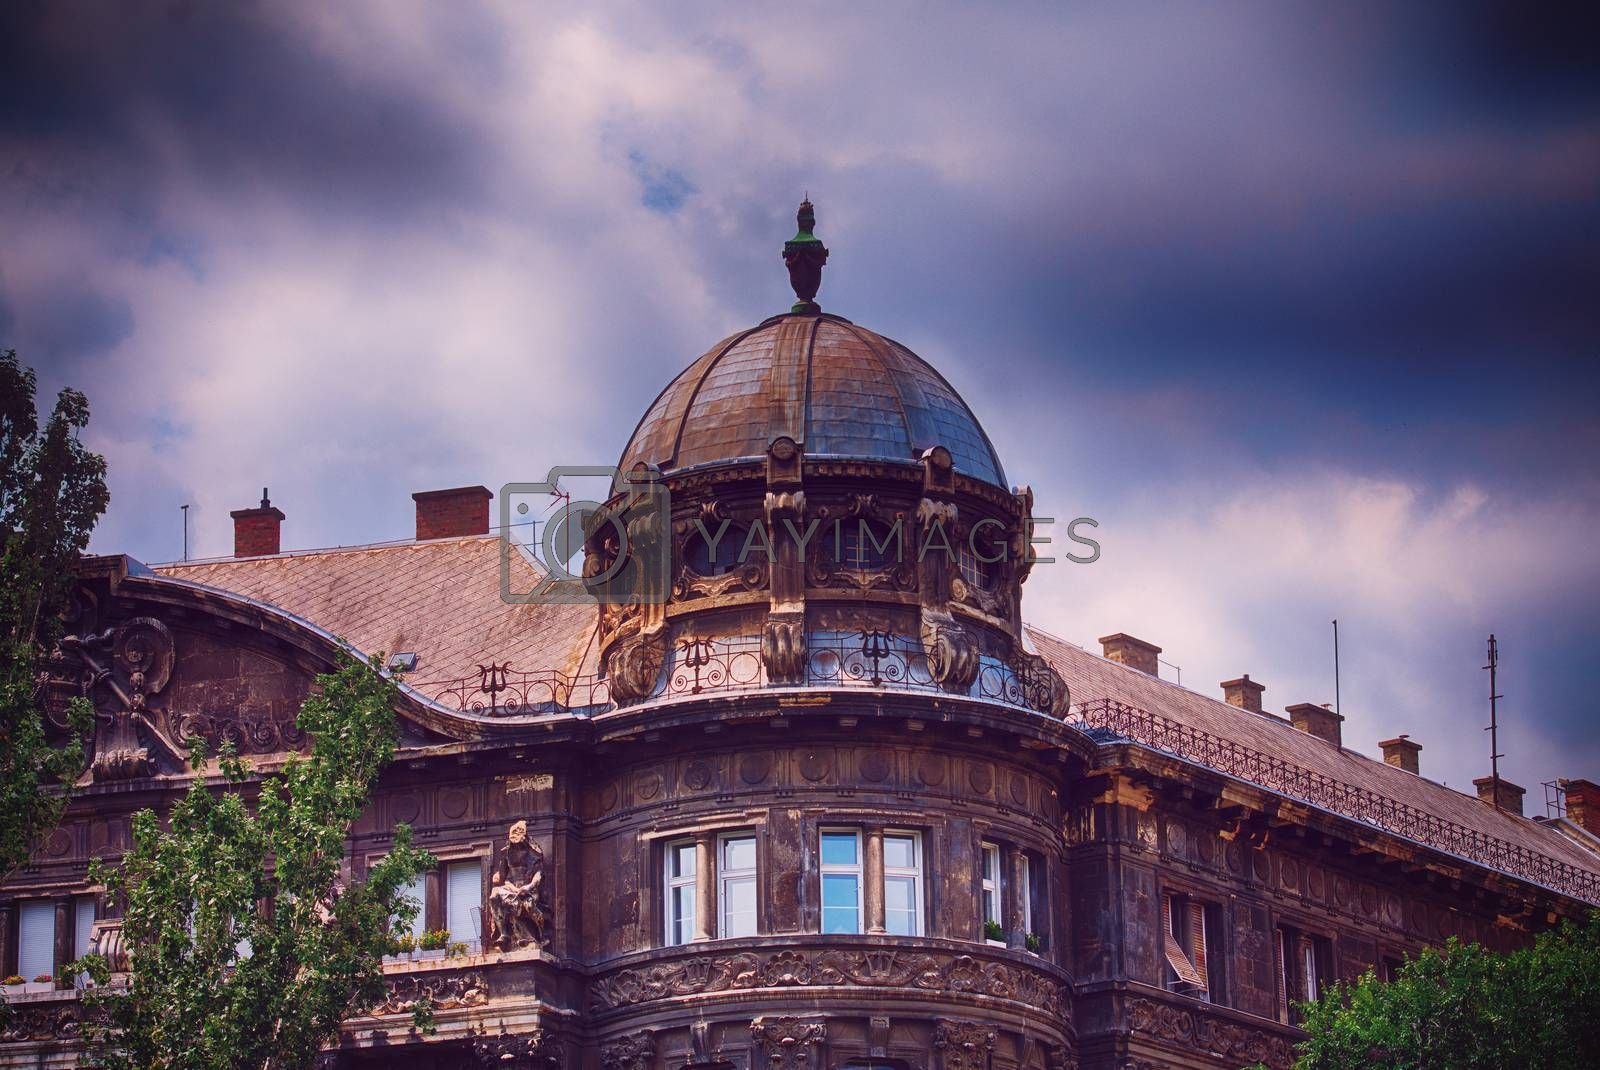 Beautiful domed old building in Budapest with dark blue stormy clouds in the background. The calm before the storm in Budapest.